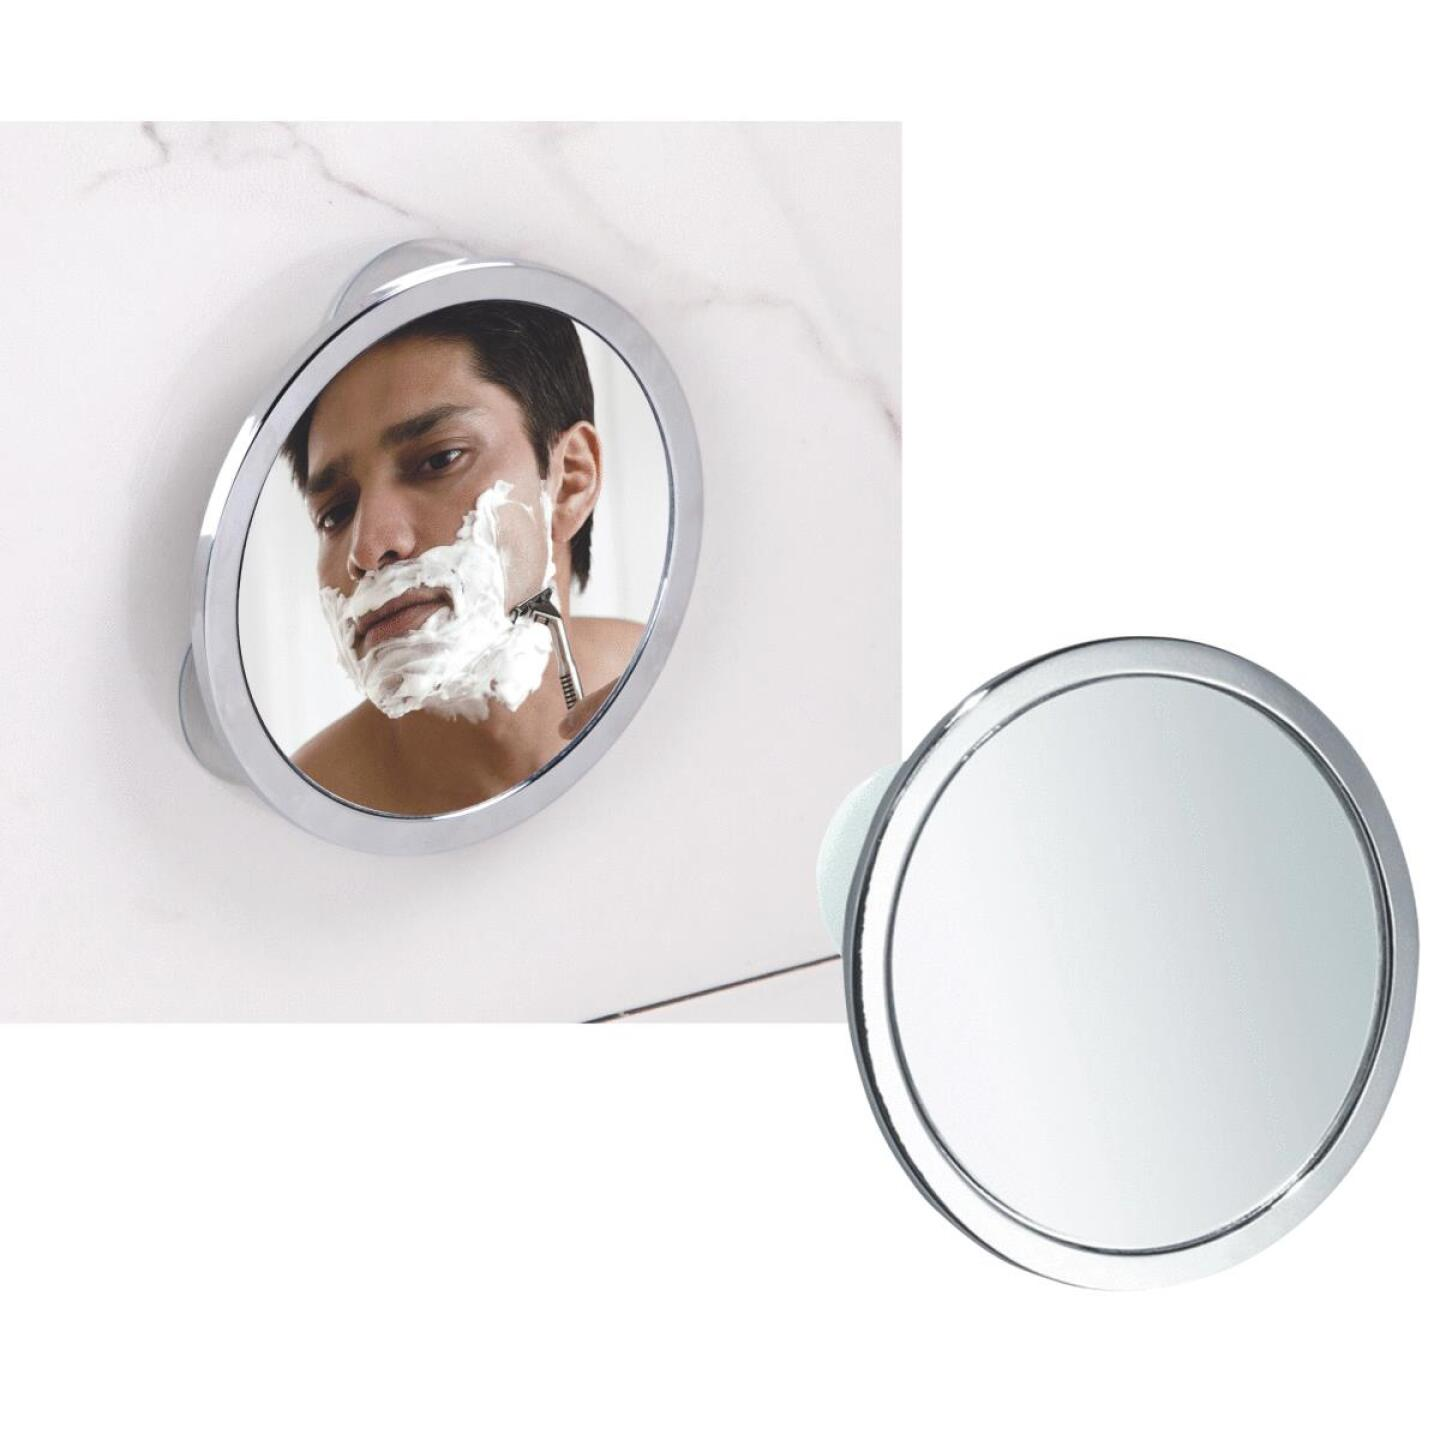 InterDesign Zia 5.75 In. Dia. Fog-Free Mirror Image 1